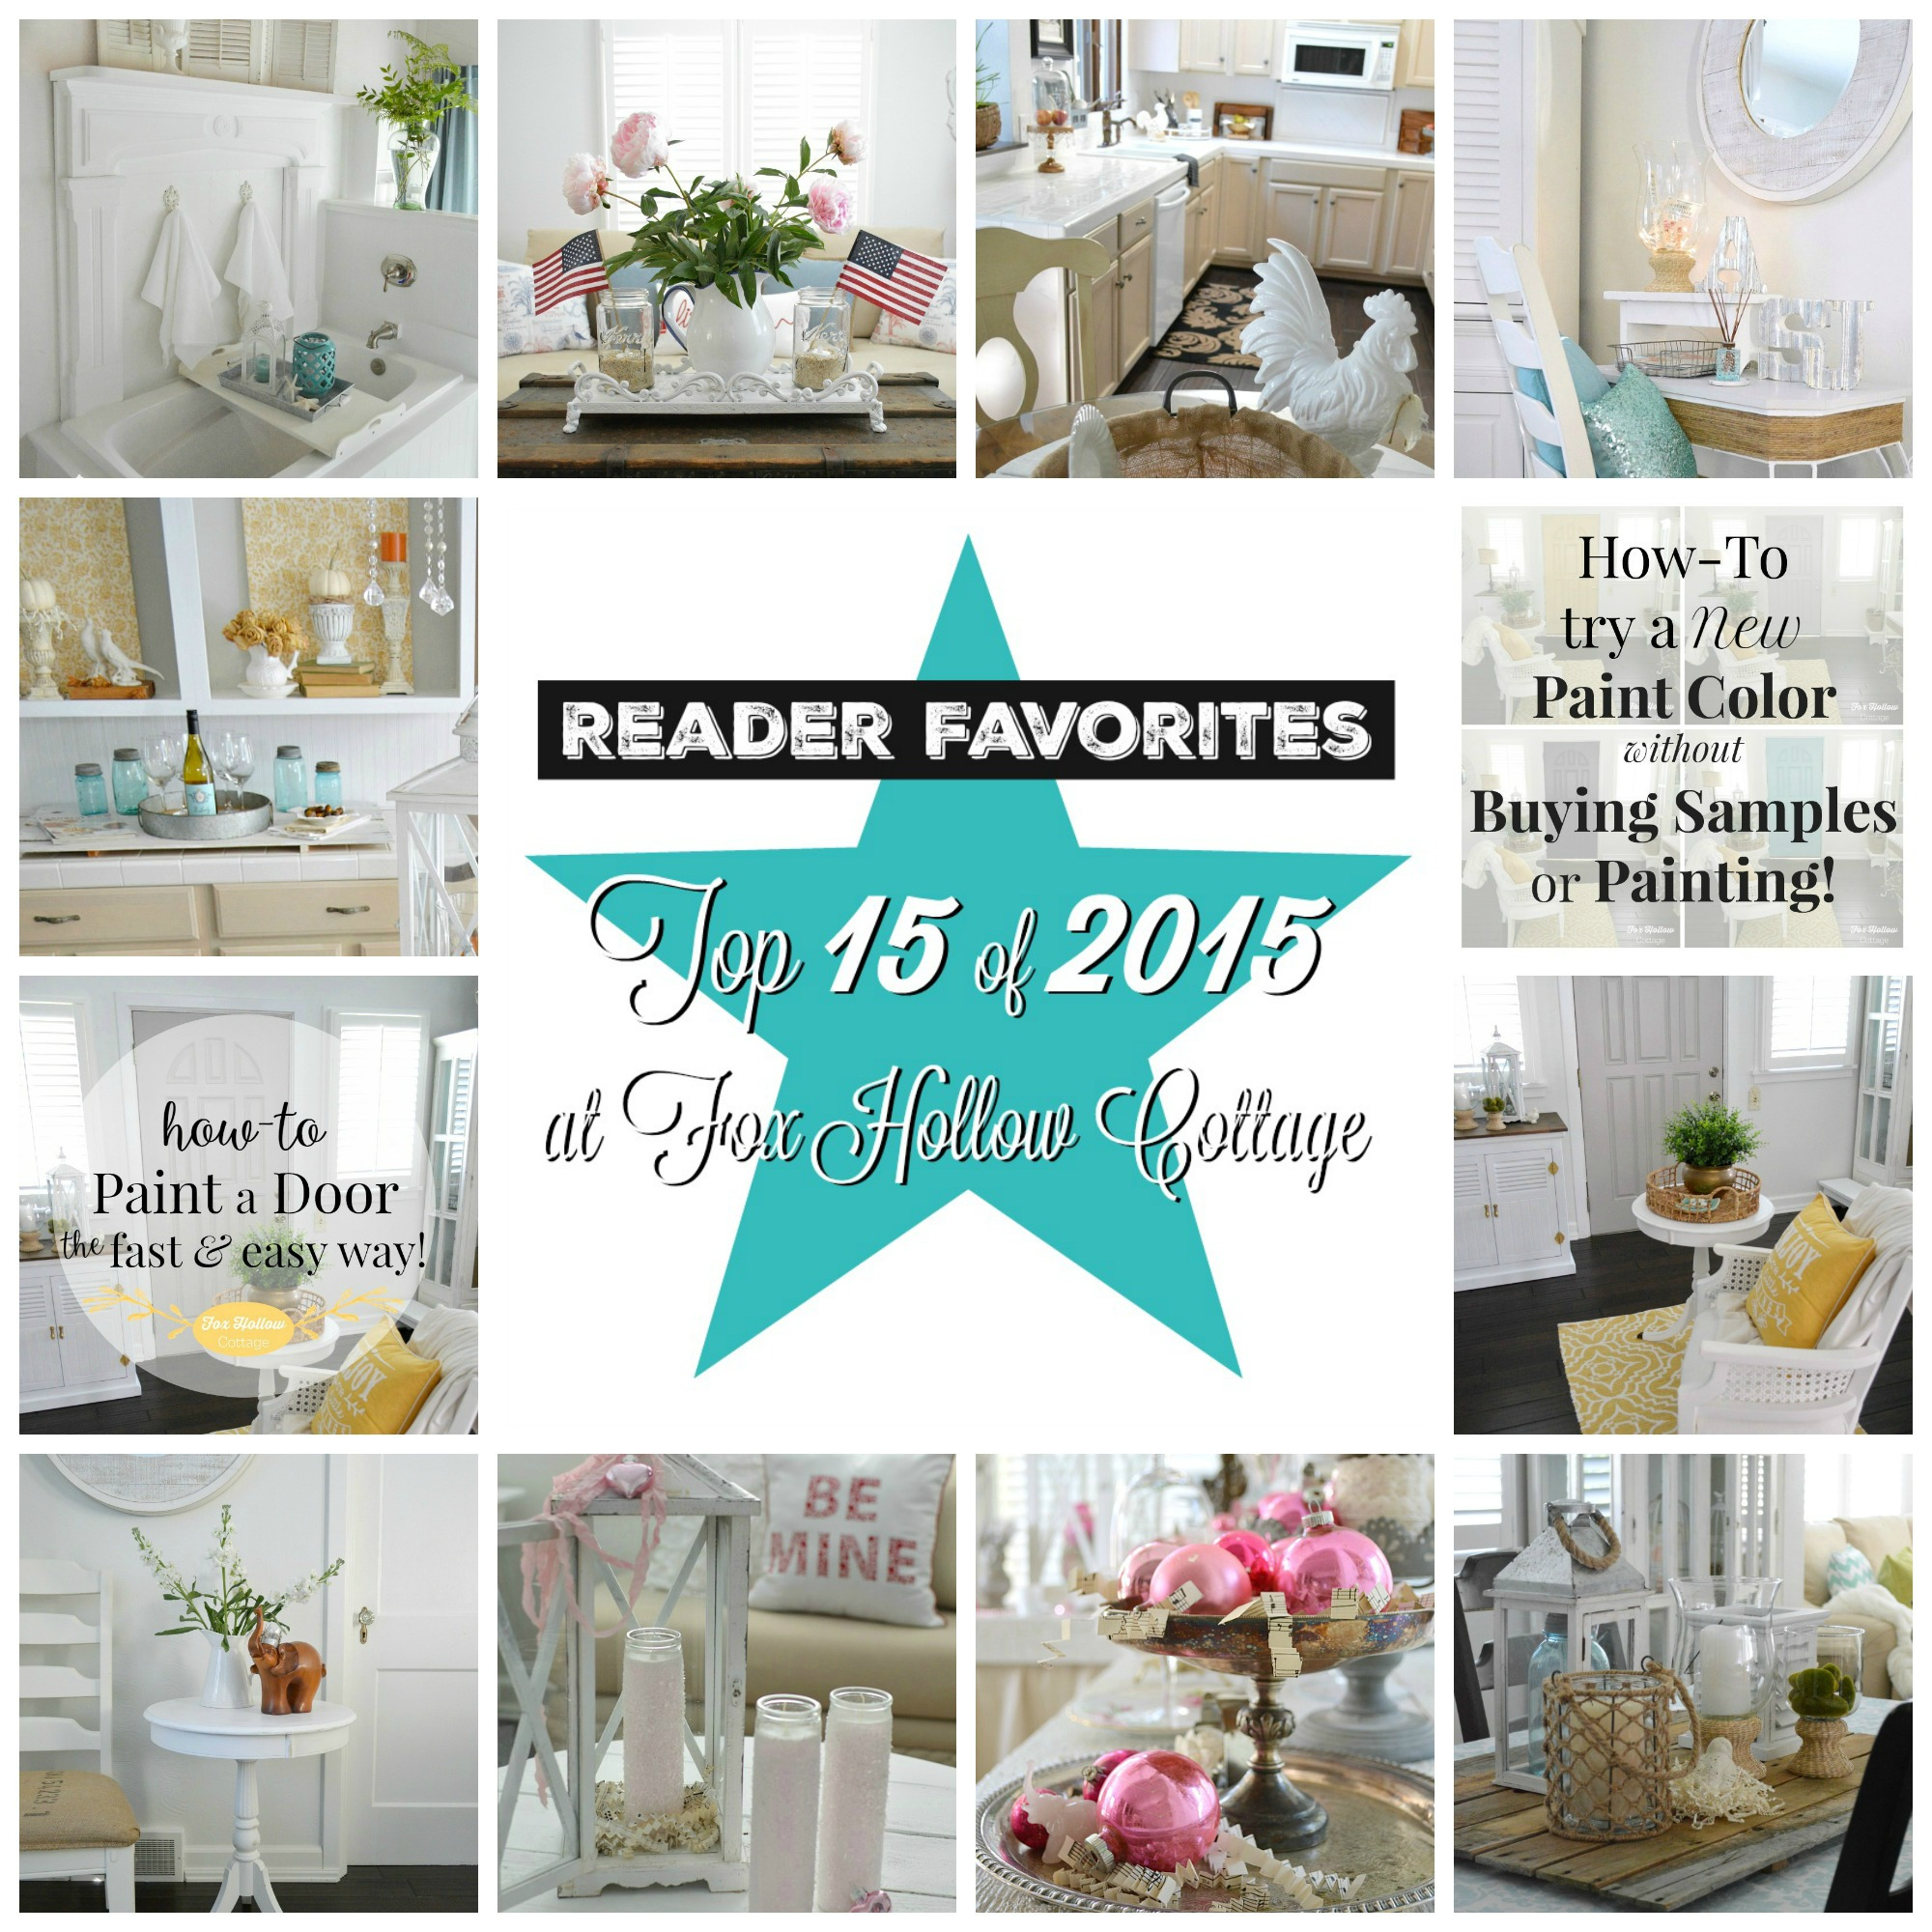 Diy Home Decor Projects: Top 15 DIY Craft And Home Decorating Projects Of 2015